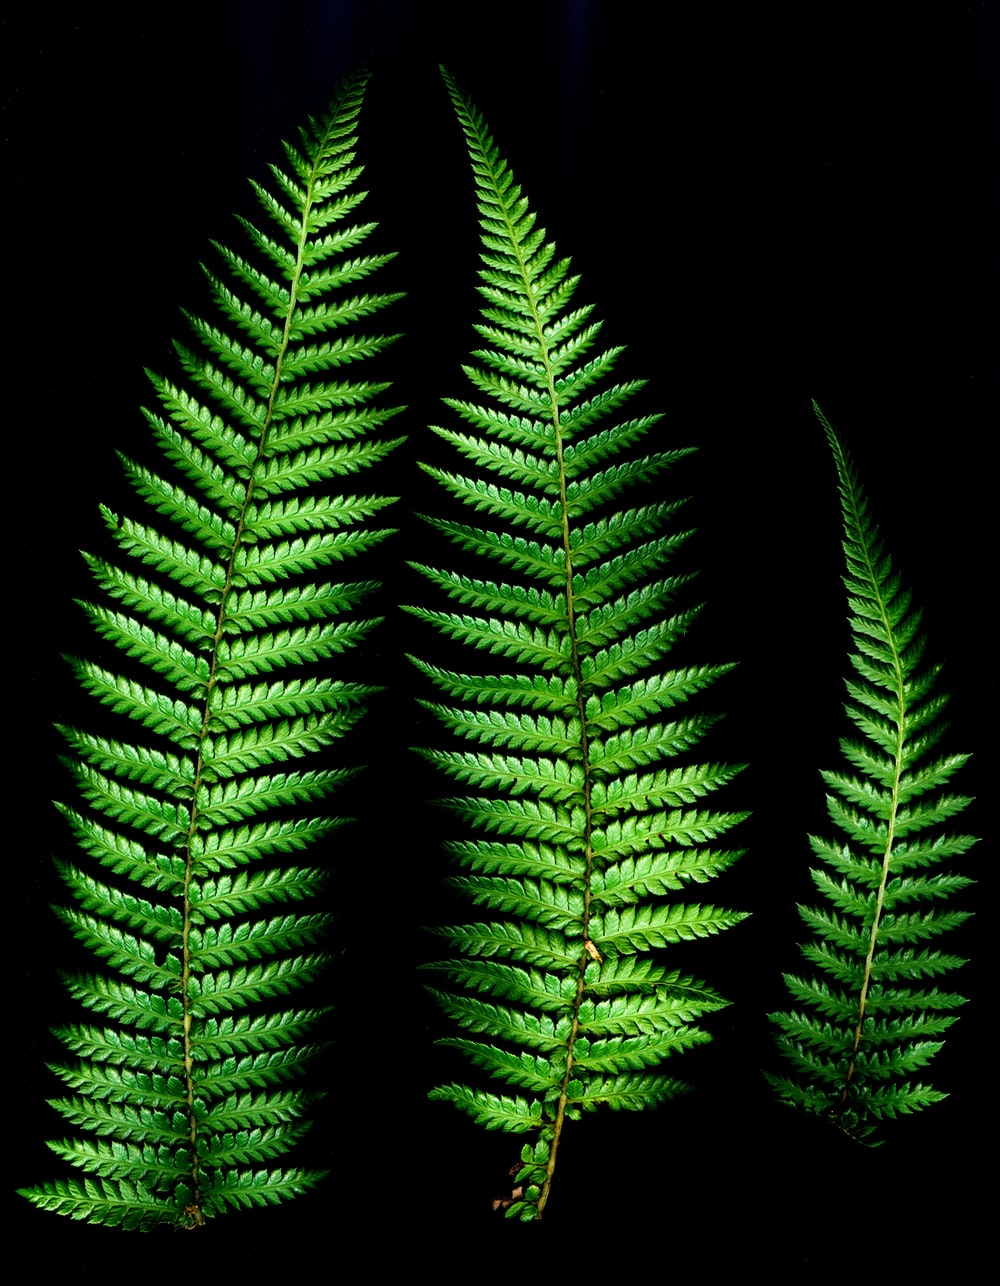 three green fern leaves